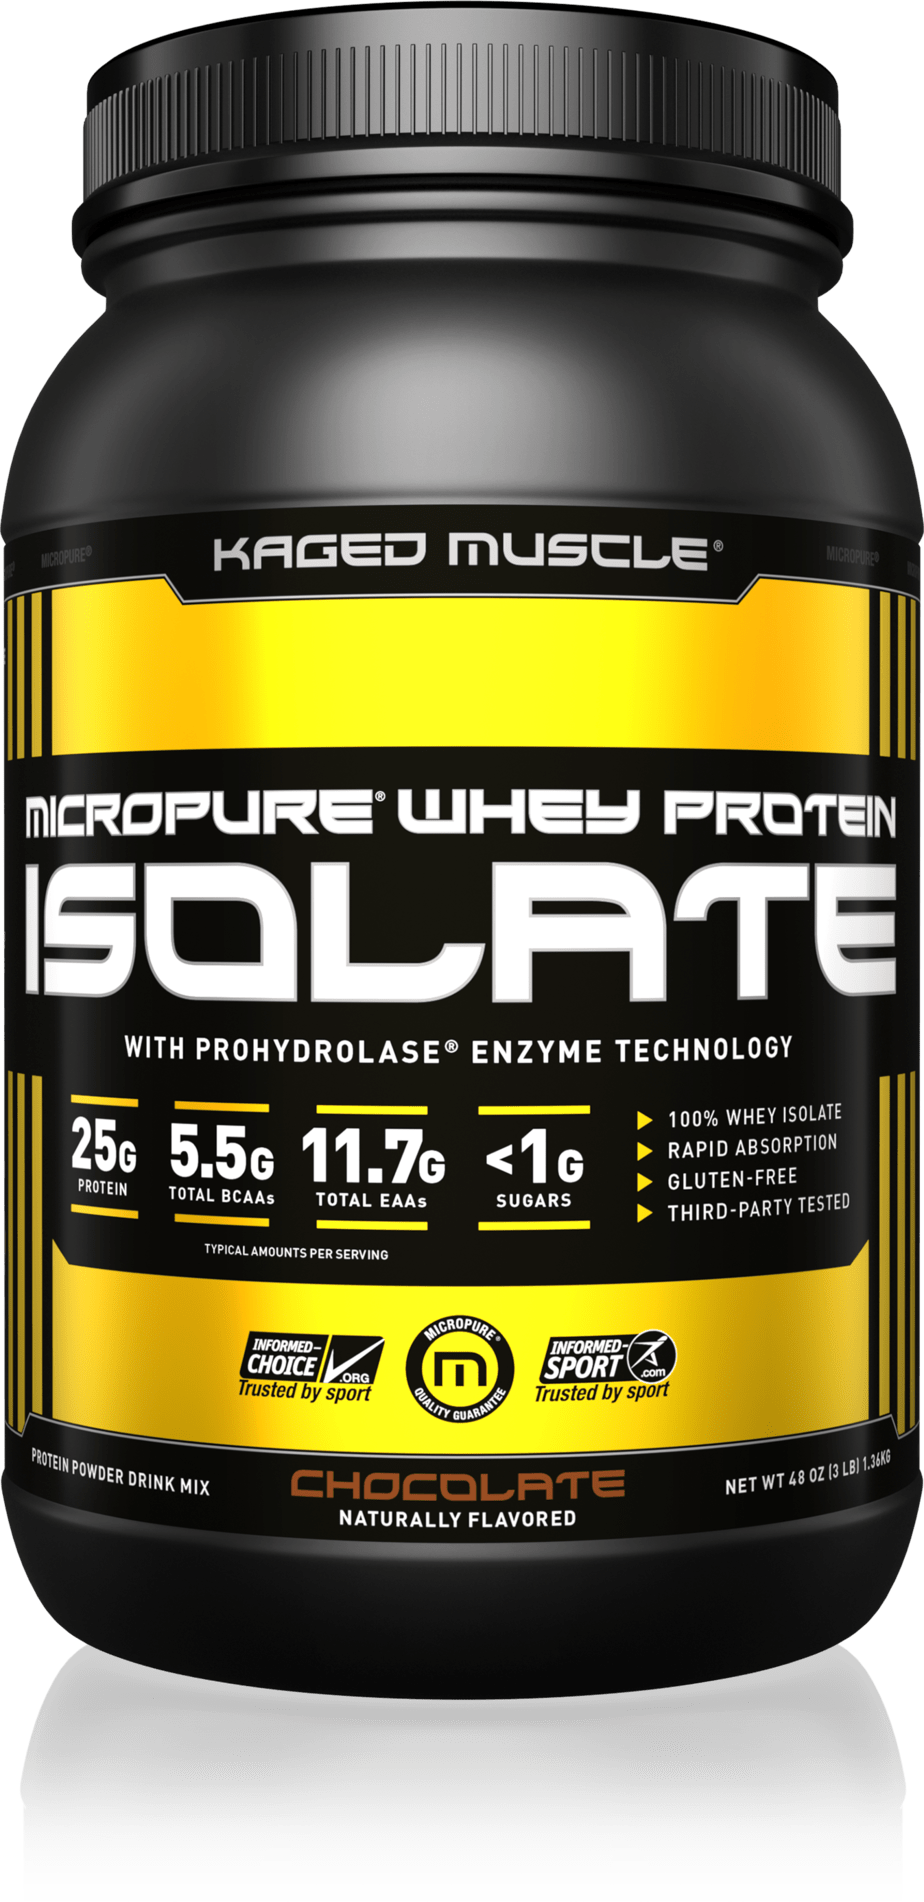 MicroPure Whey Protein Isolate Powder (Kaged Muscle)